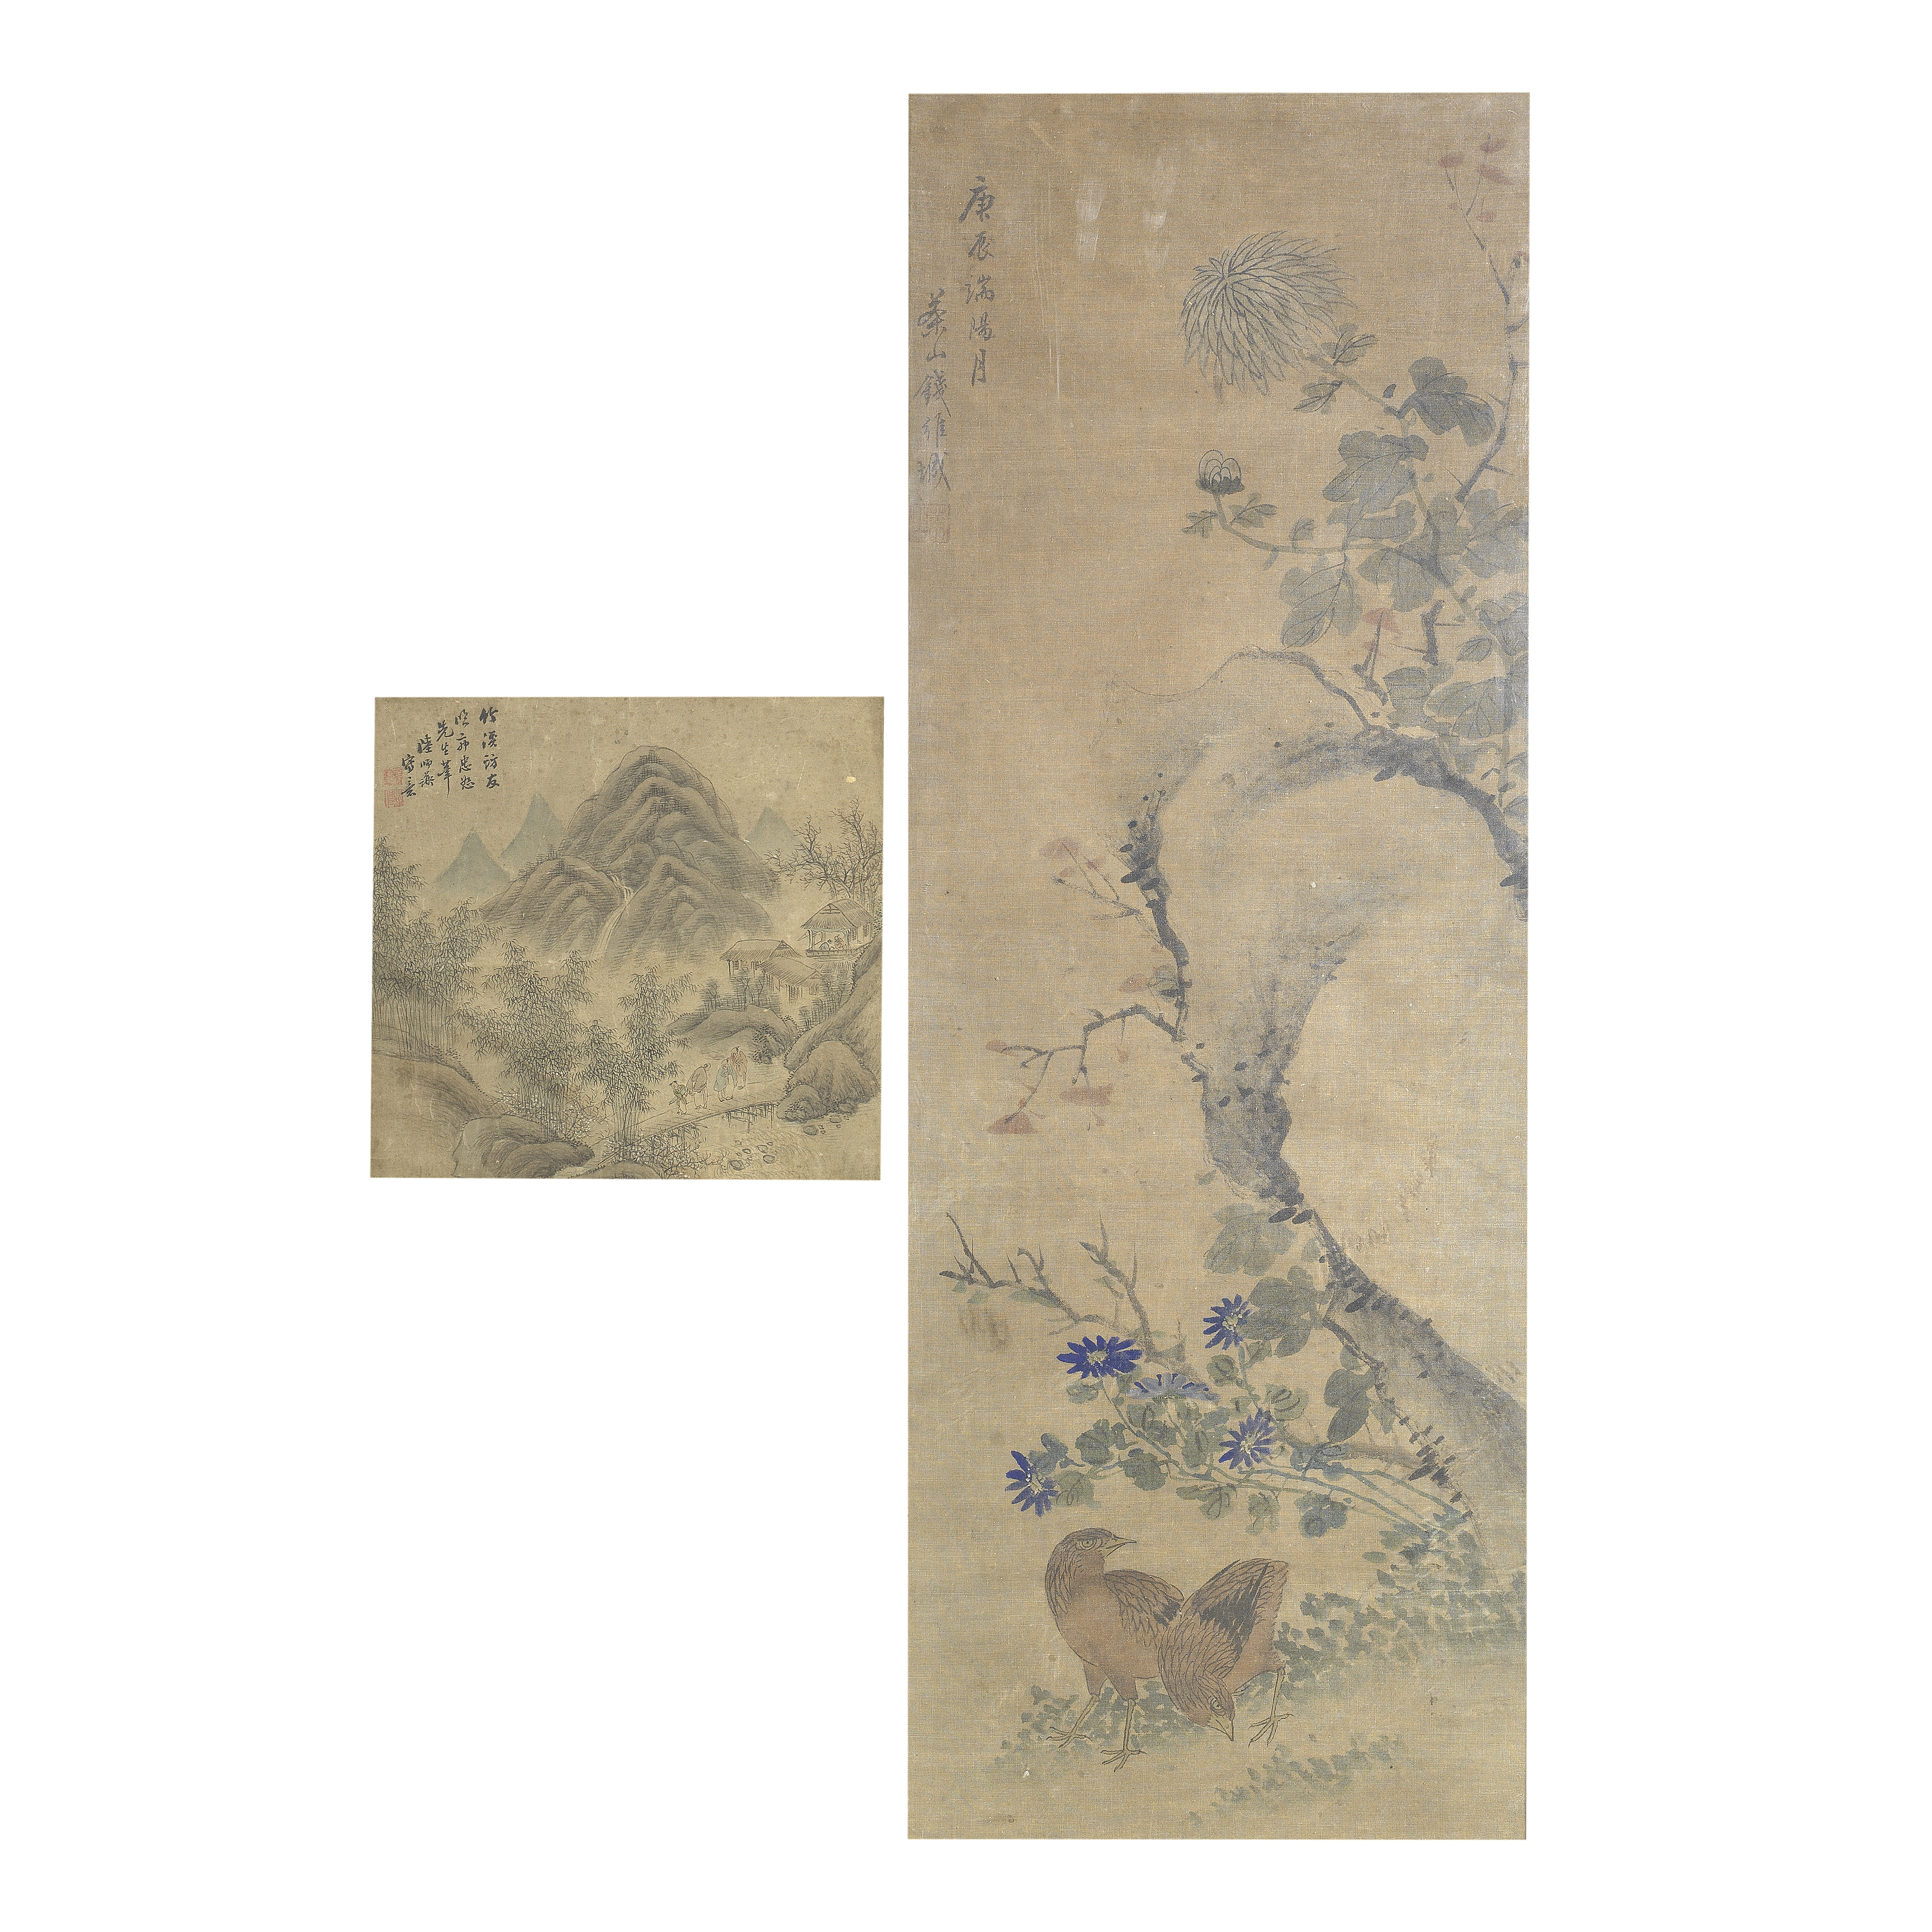 AFTER LU SHIDAO AND AFTER QIAN WEICHENG (19TH/20TH CENTURY) 'Landscape with figures' and 'Quails ...